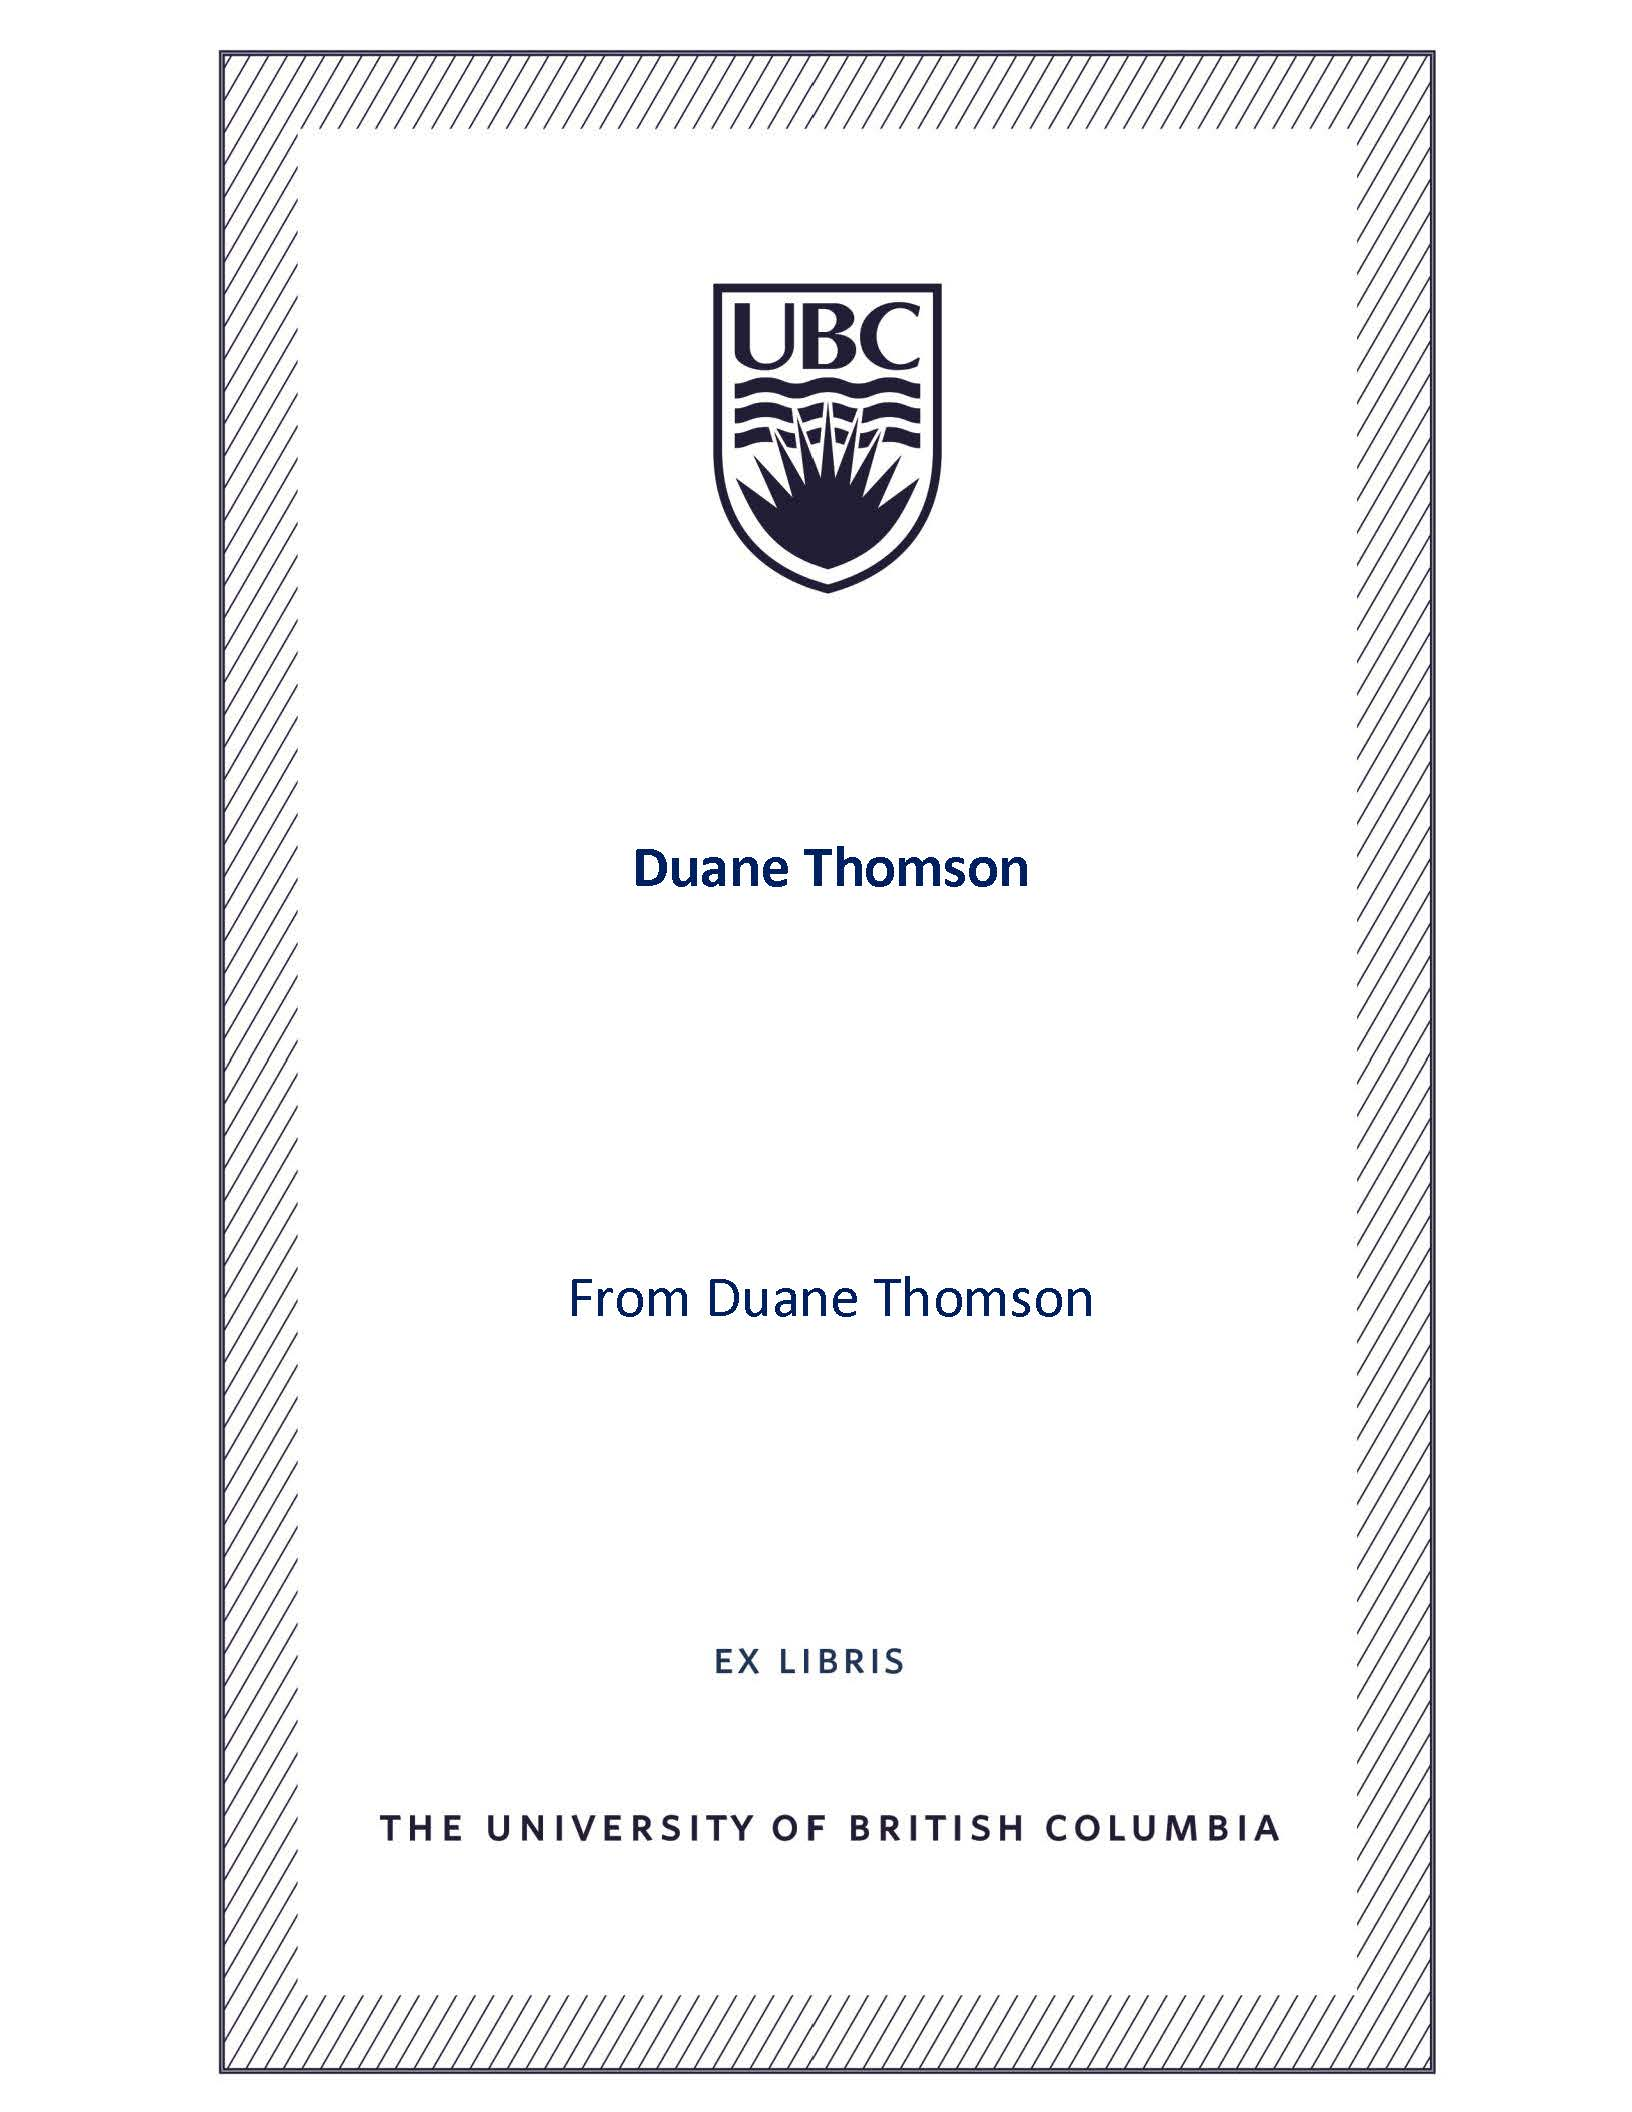 UBC Bookplate from Duane Thomson | Support UBC Library